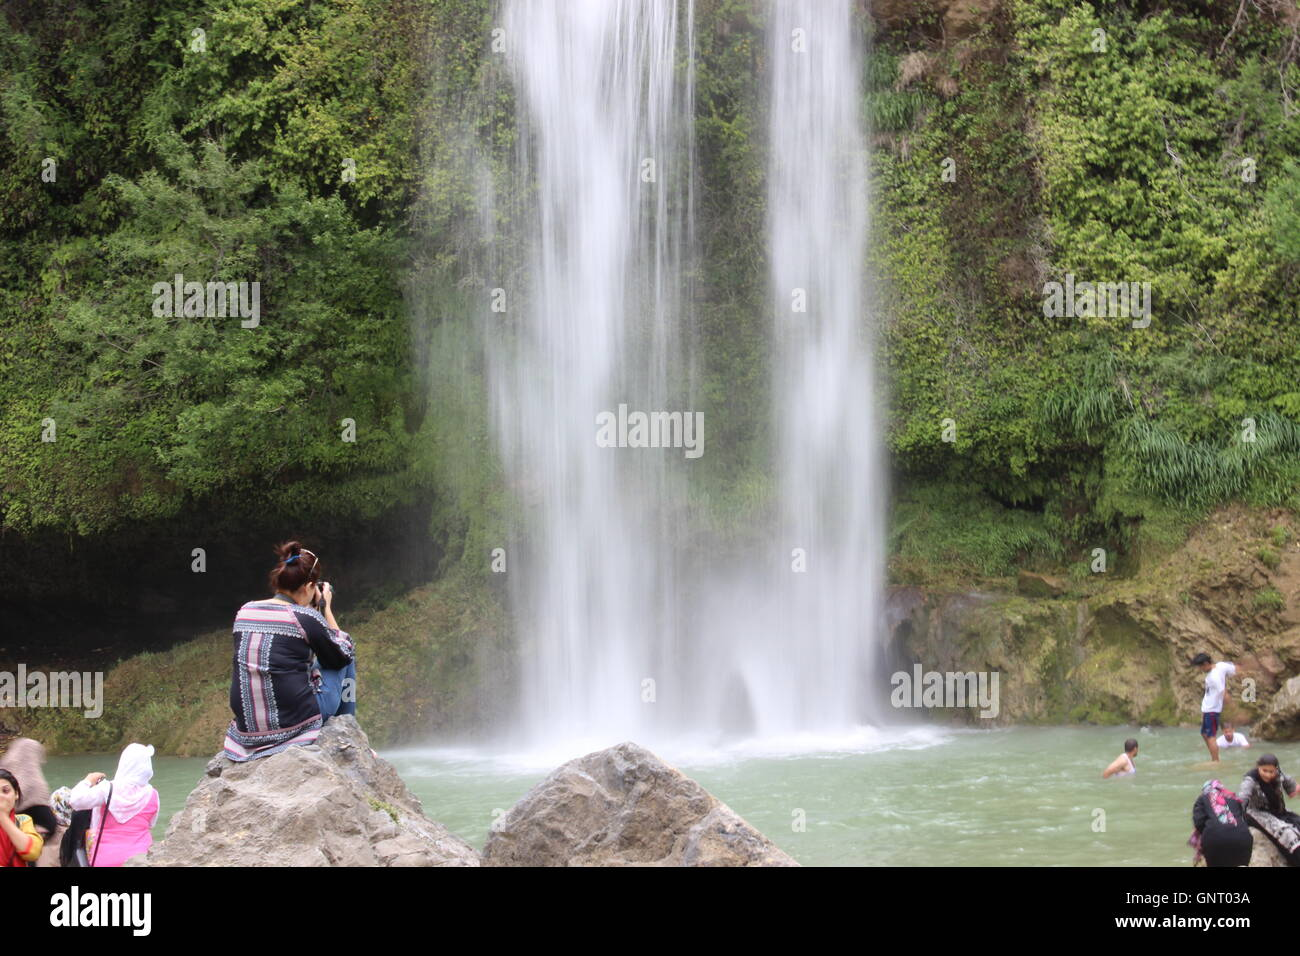 A slow shutter photo of a waterfall, the water streaming down creating a dreamy effect.A girl sits on a rock capturing - Stock Image